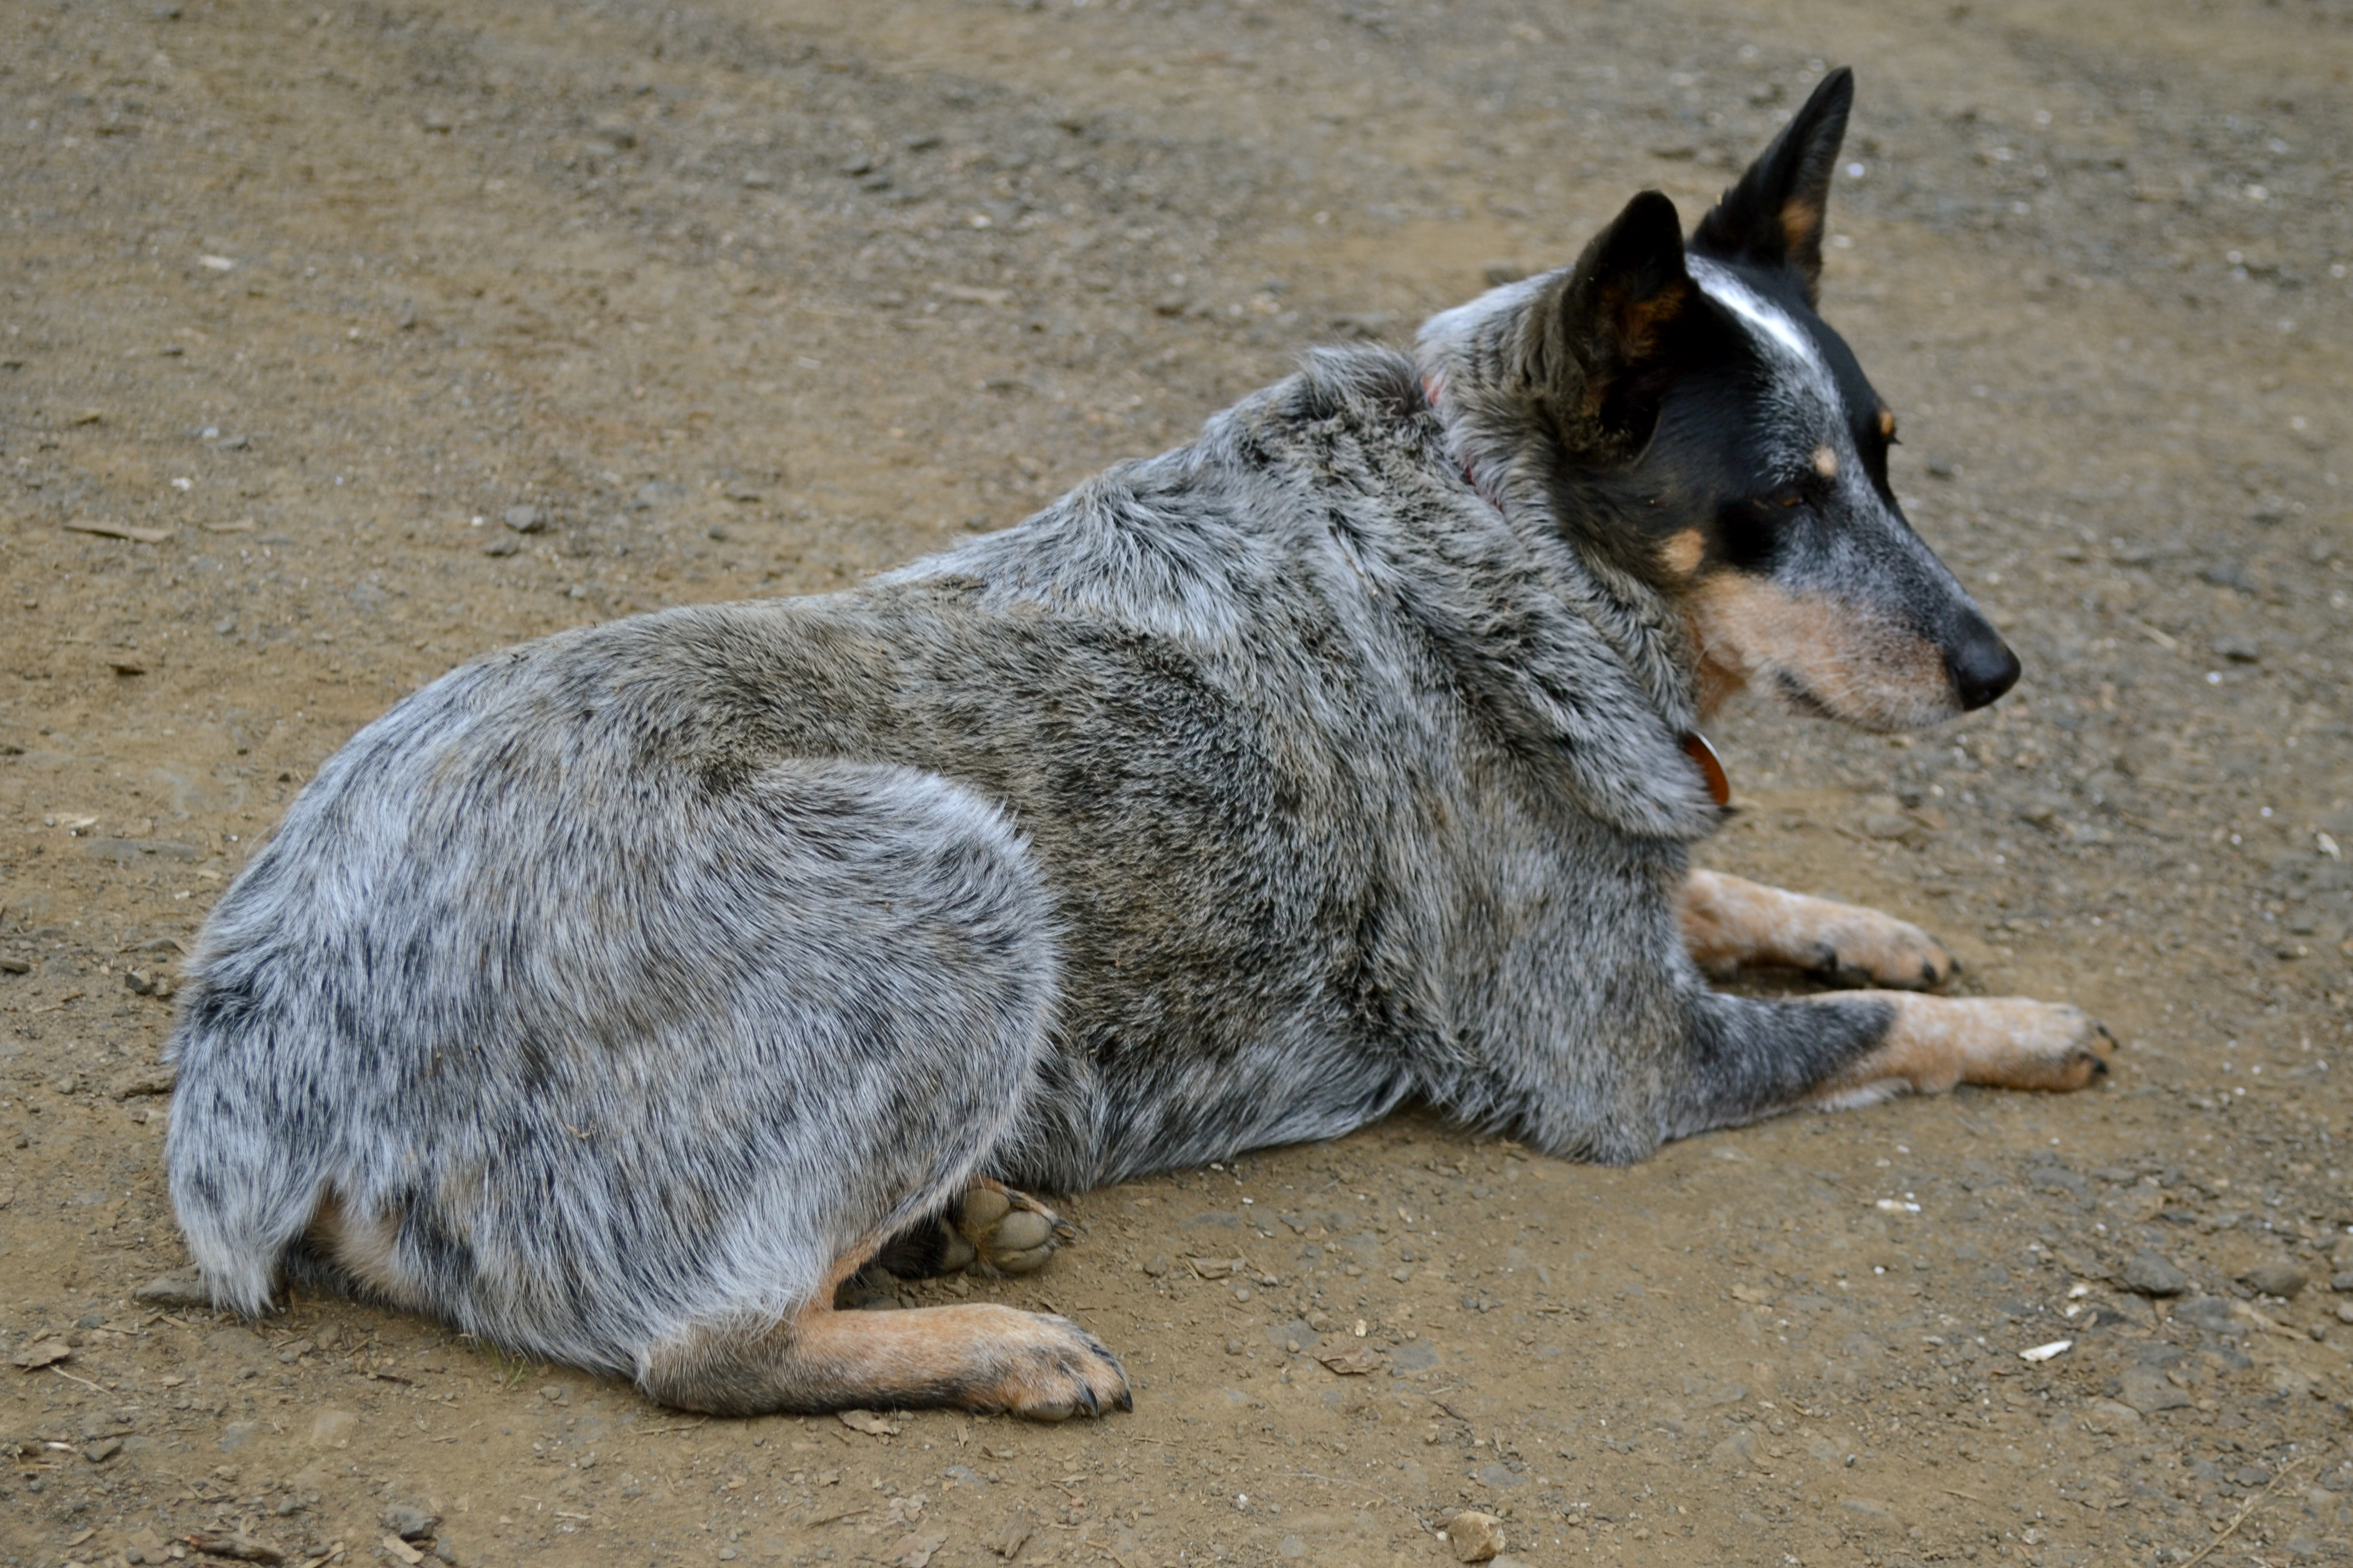 heeler (Australian cattle dog), and she's about eight years old